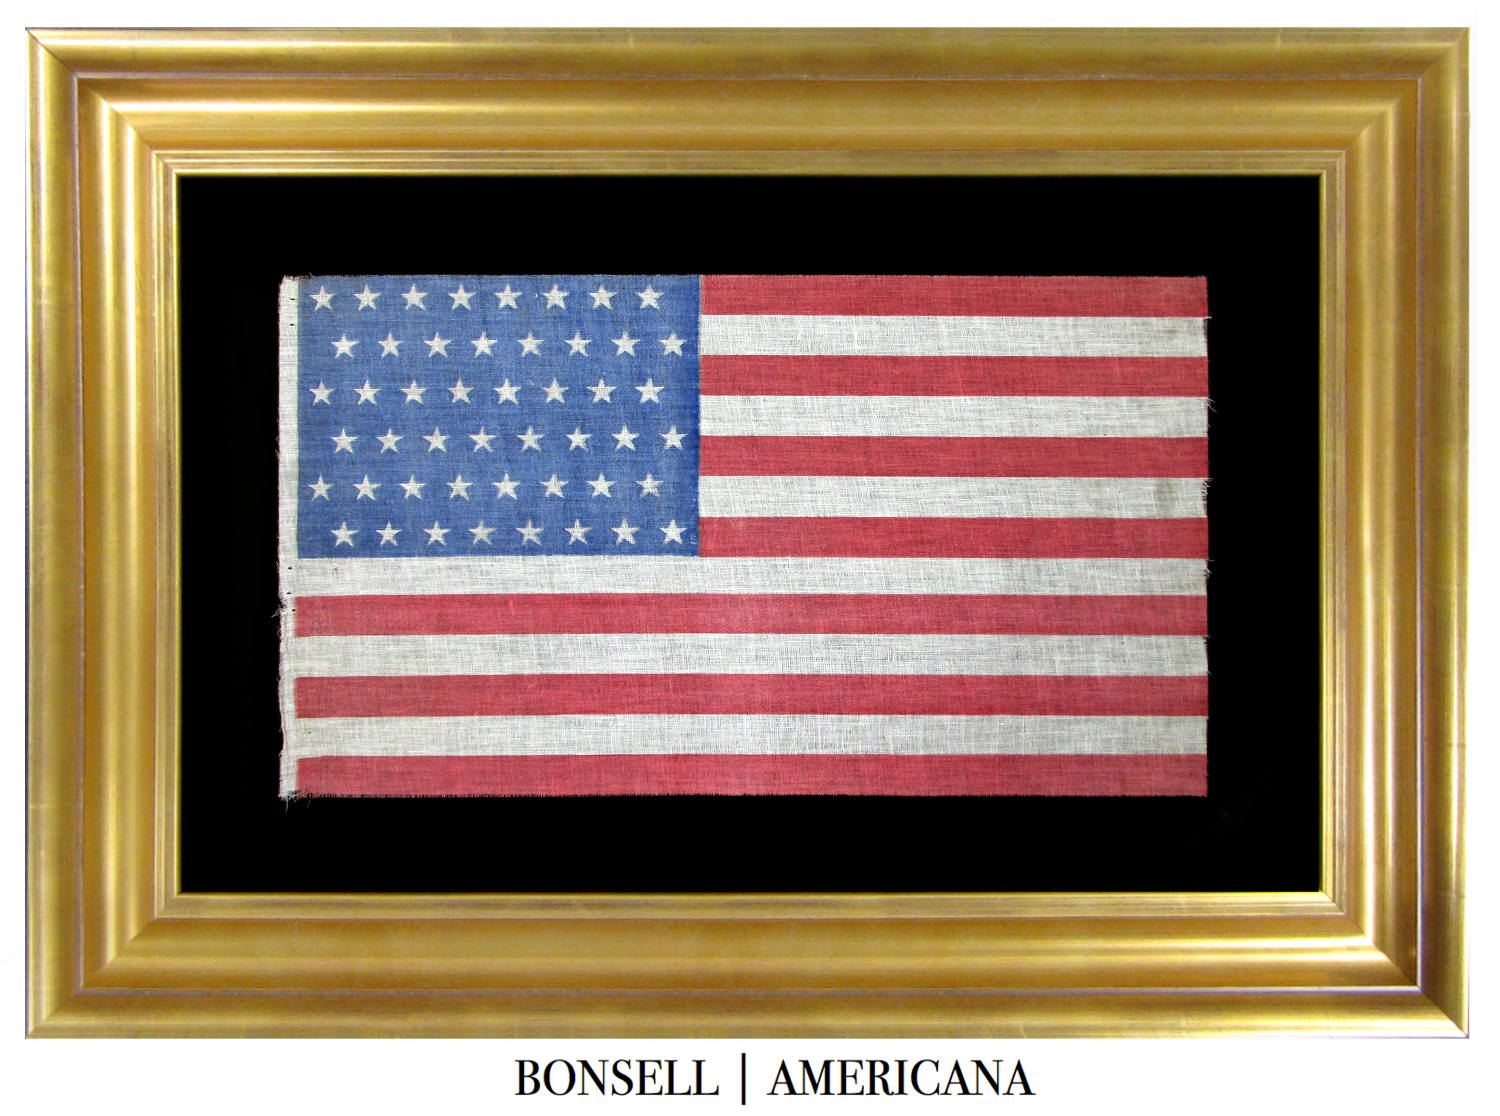 48 Star Antique Flag with Staggered Star Pattern